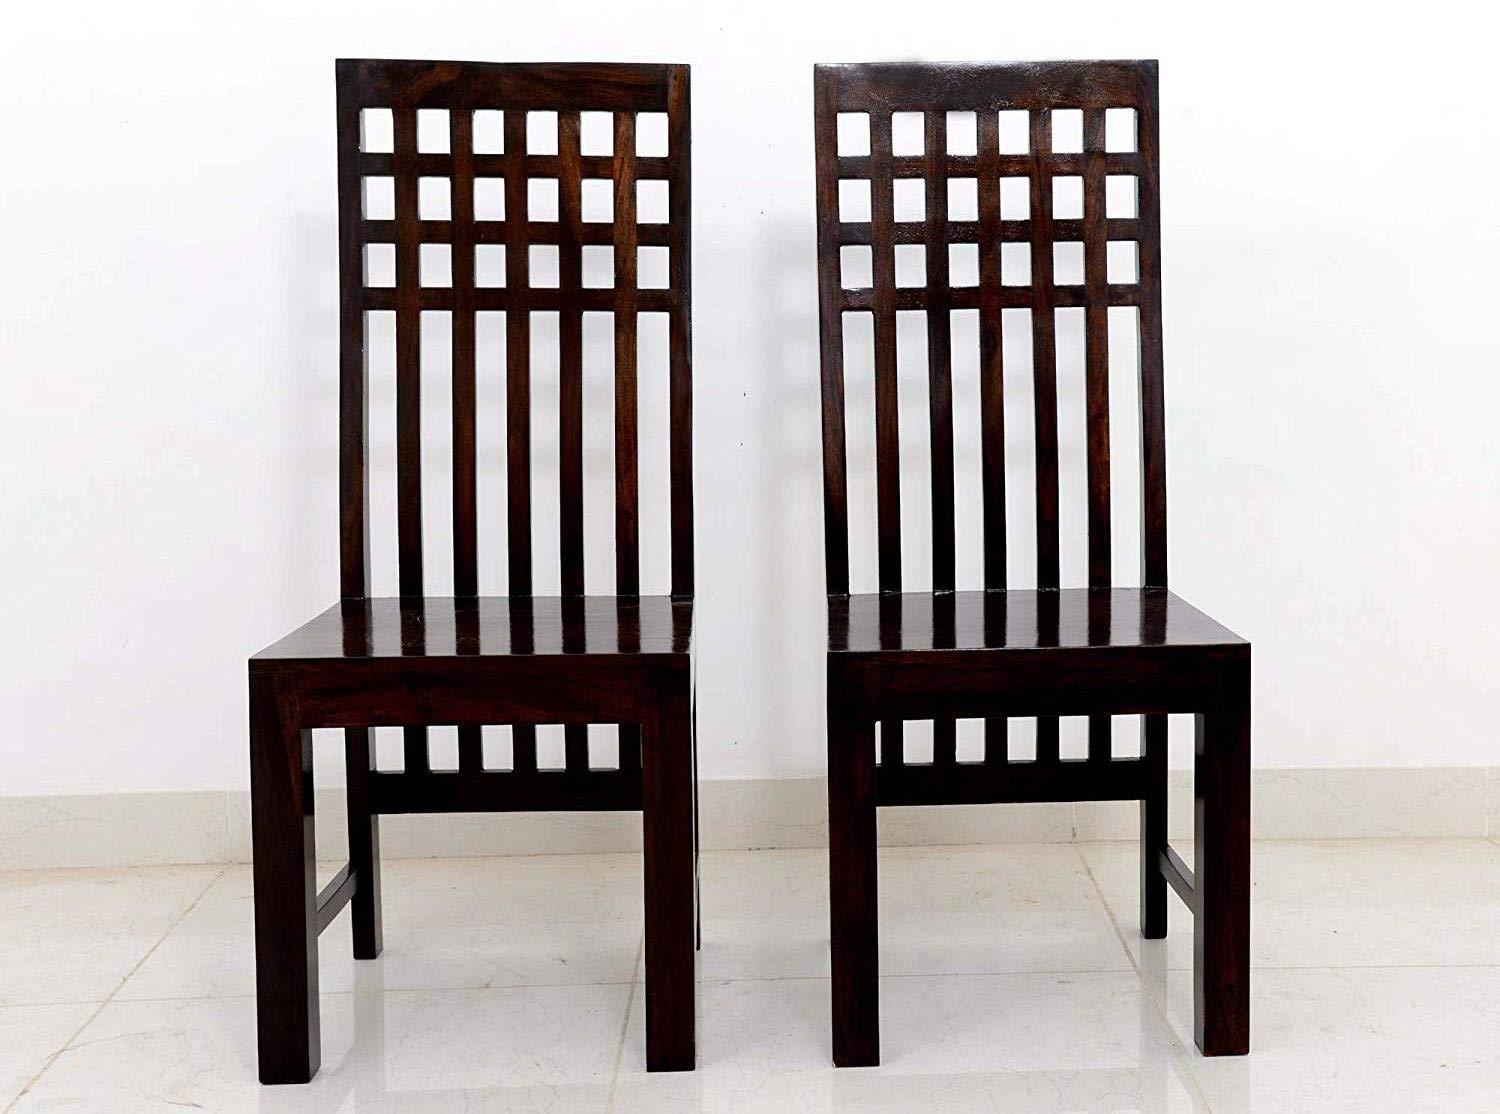 Uozmin Wooden Study Chair for Wooden study Chair Set of 2